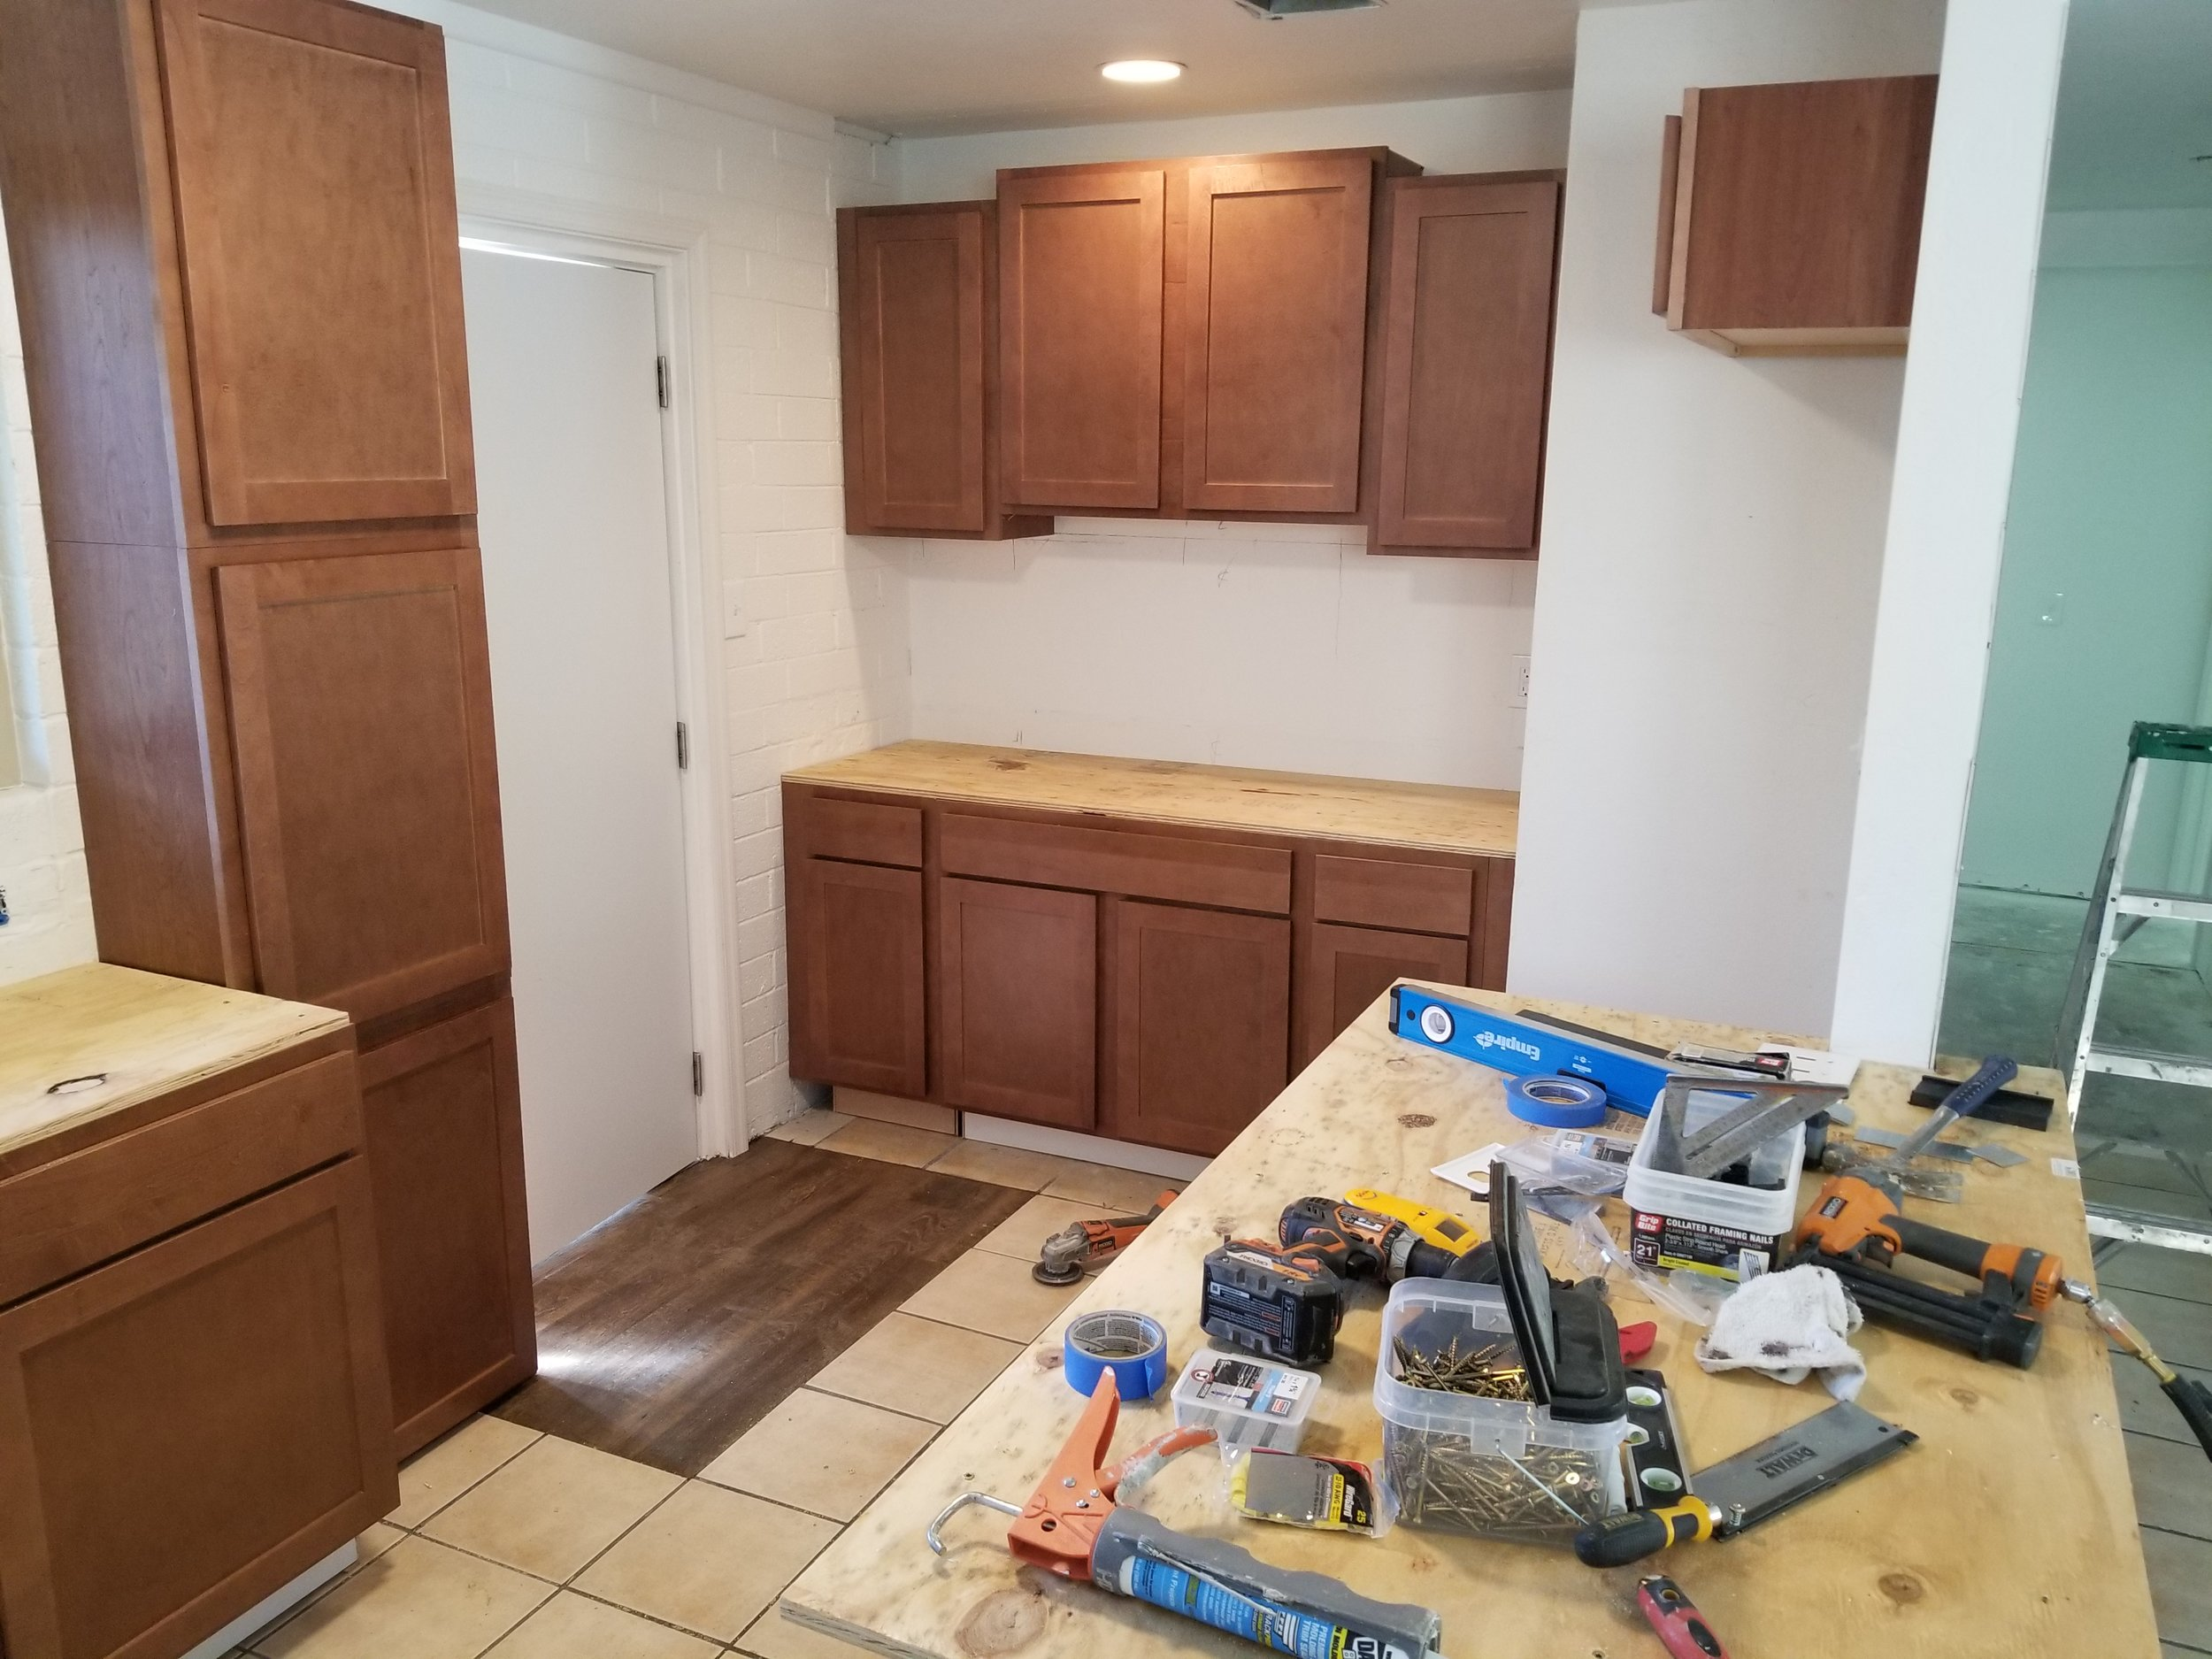 Cabinets installed